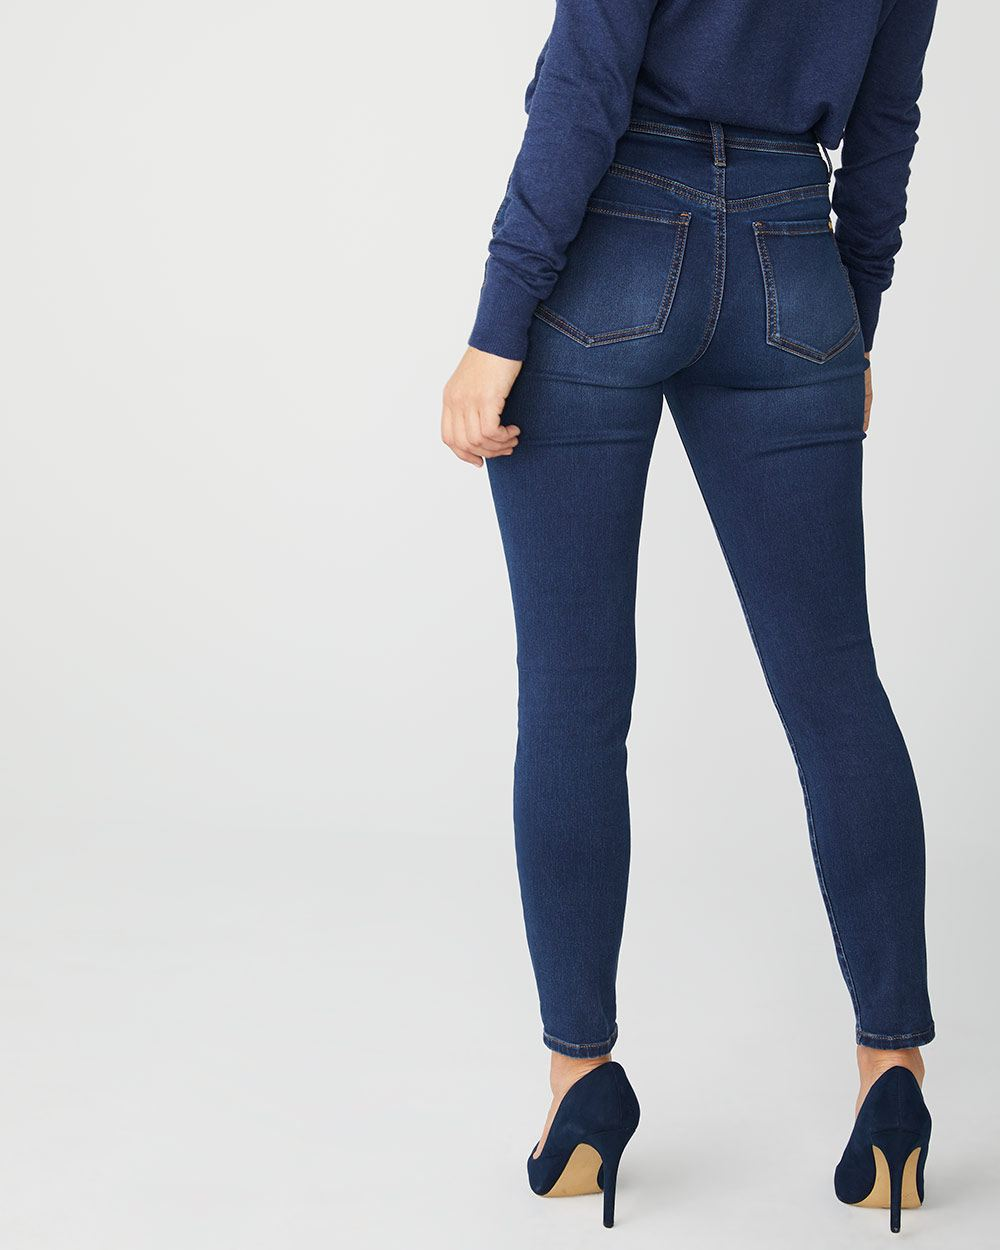 Natalie Mid-rise ankle jegging in rinse wash denim